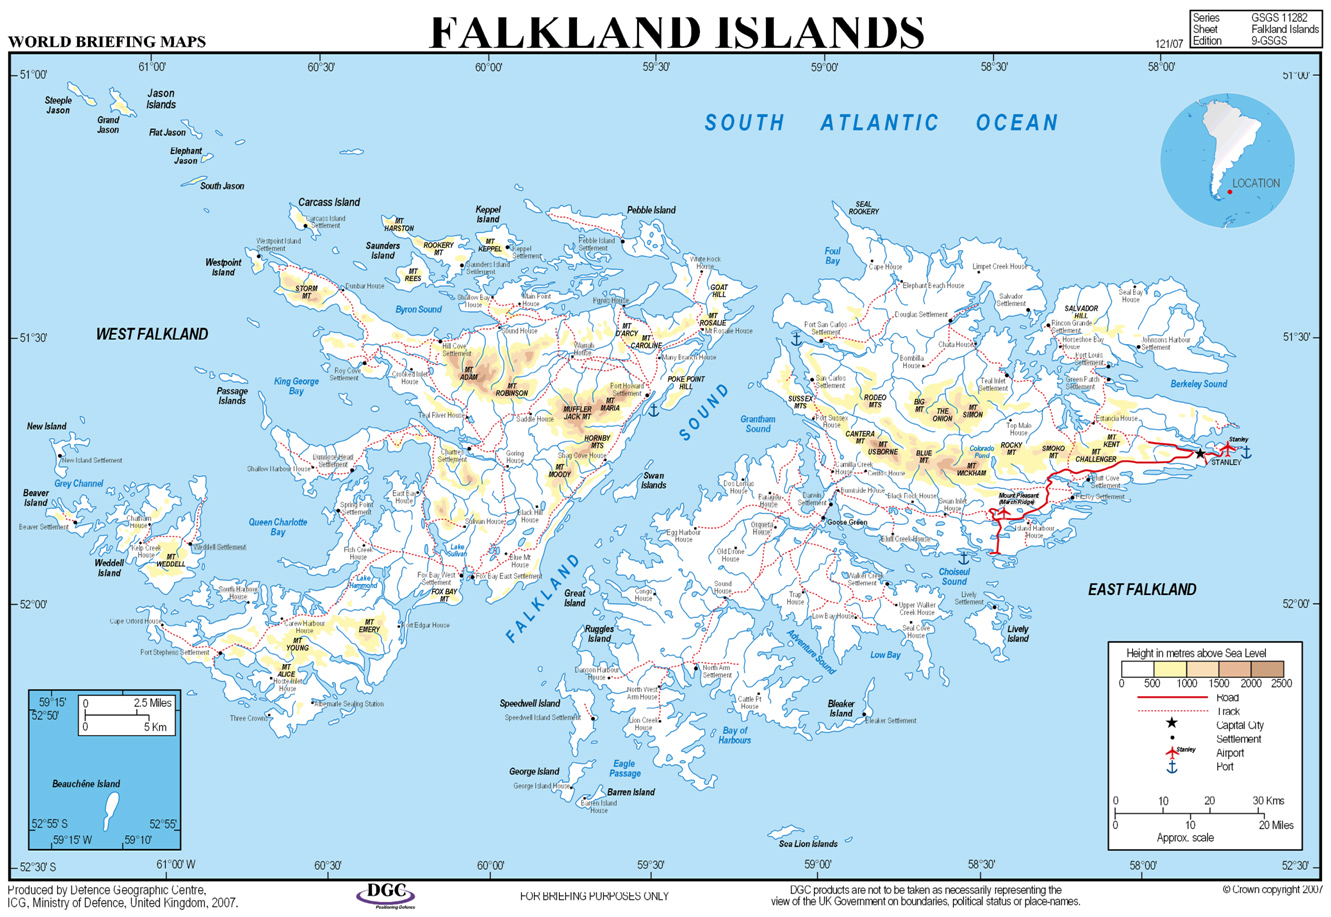 Elevation Map Of Falkland Islands With Cities Roads Sea Ports - World airports map